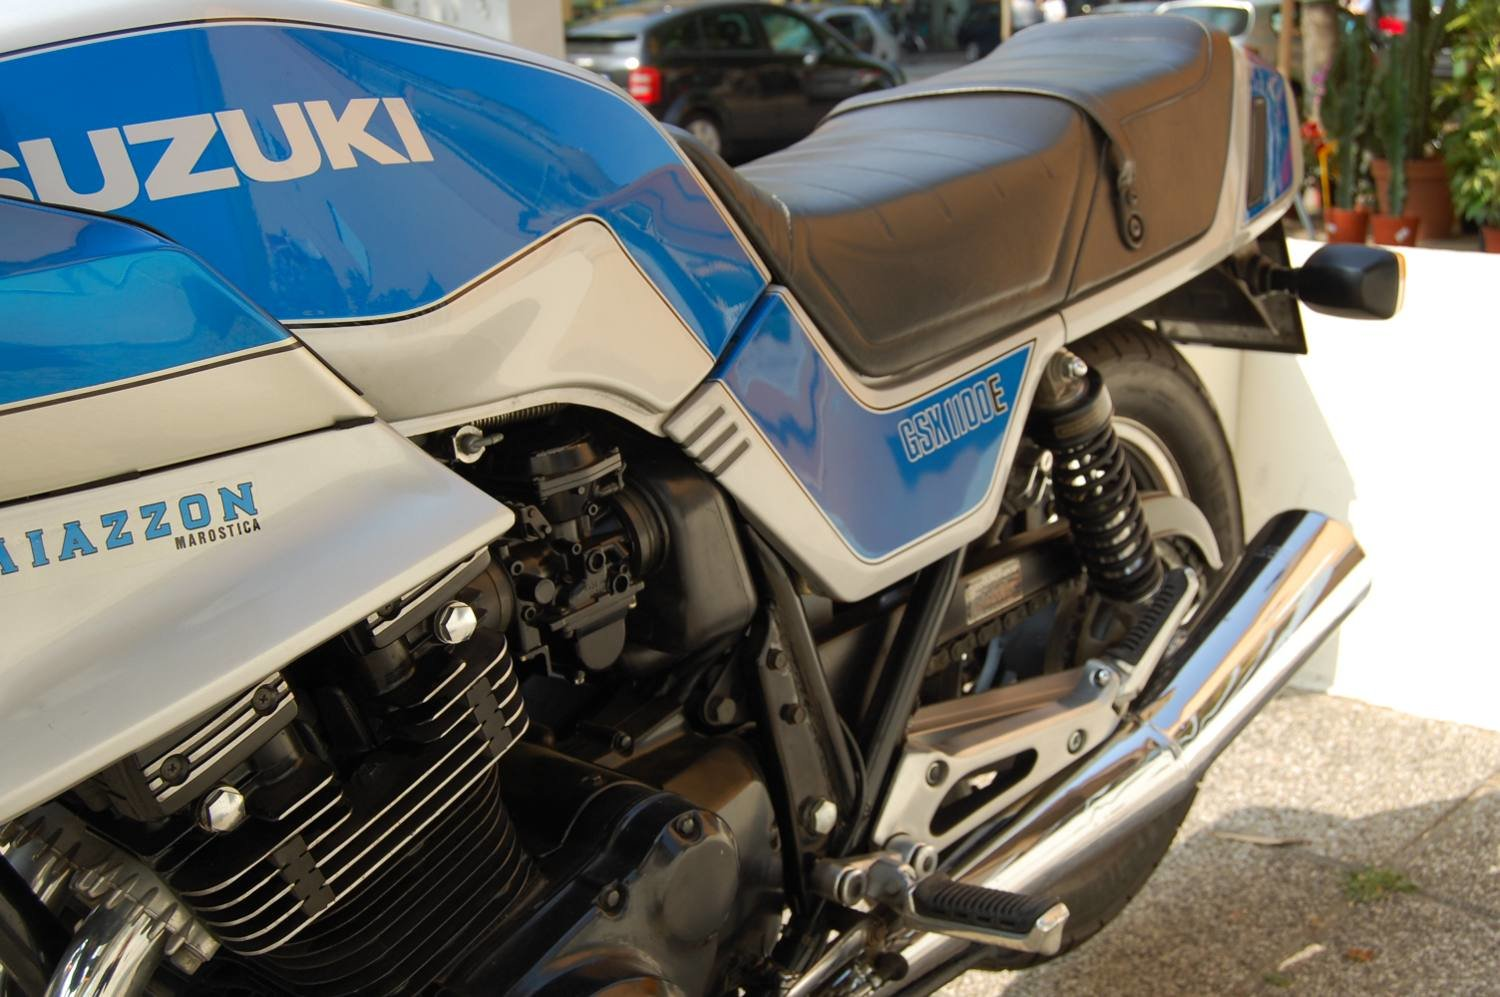 1983 Suzuki GSX 1100 E For Sale (picture 4 of 4)